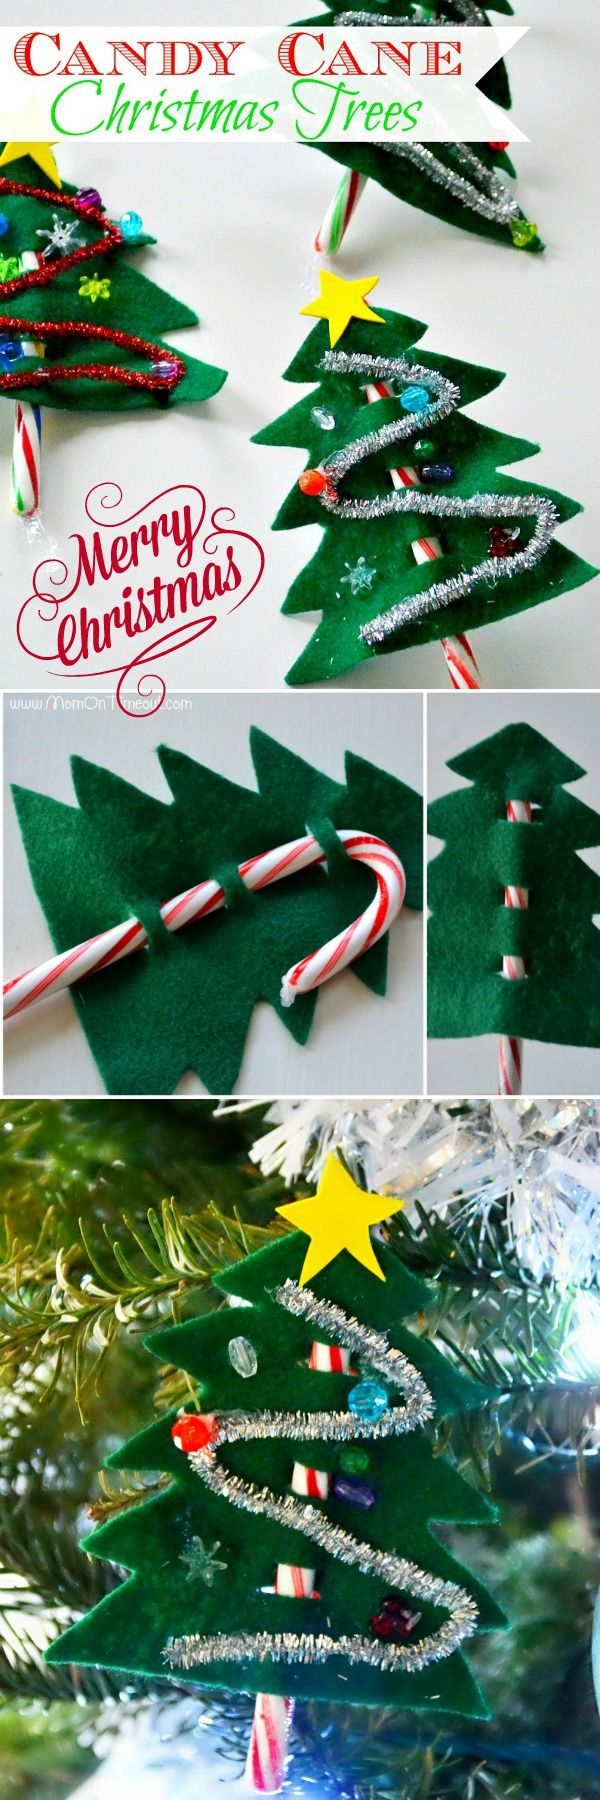 Candy Cane clipart christmas goody Pinterest Cane Candy ideas 25+